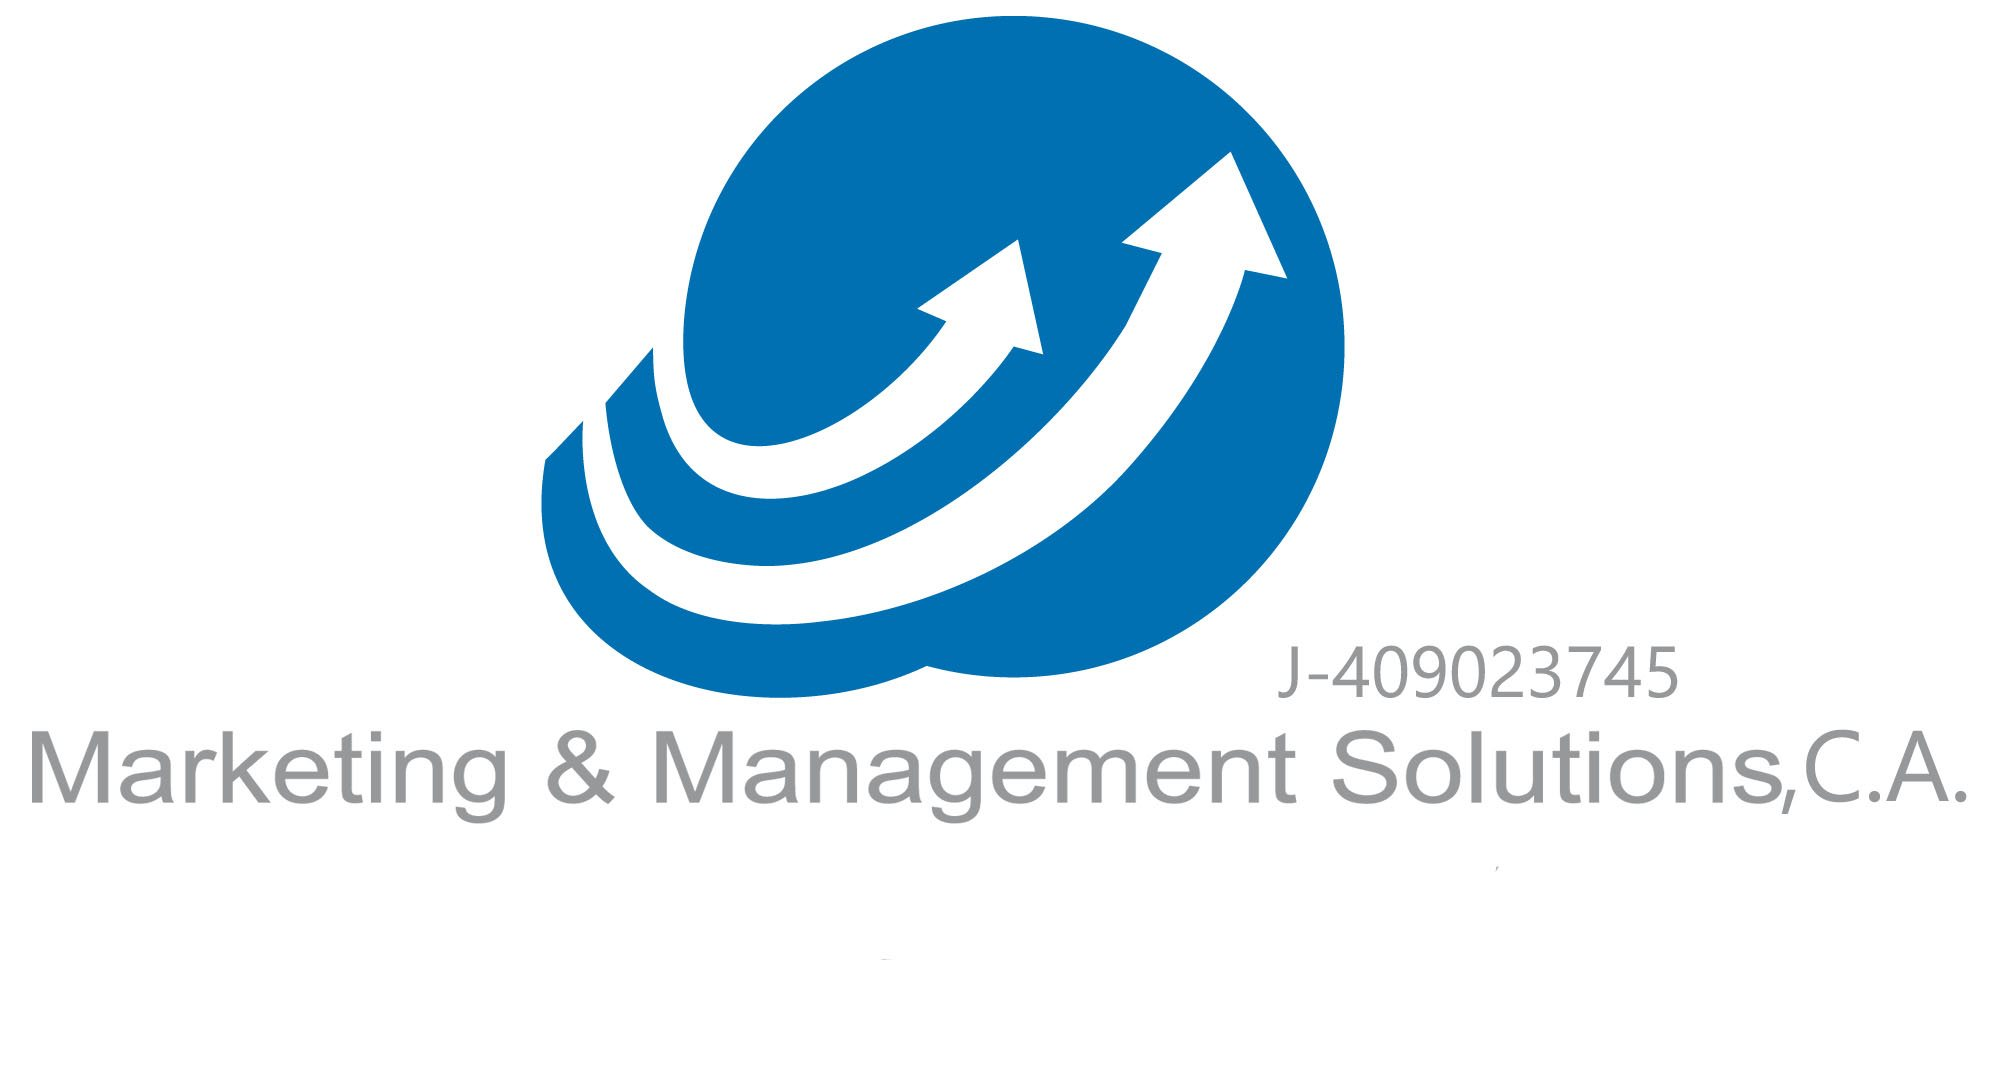 Marketing & Management Solutions C.A.